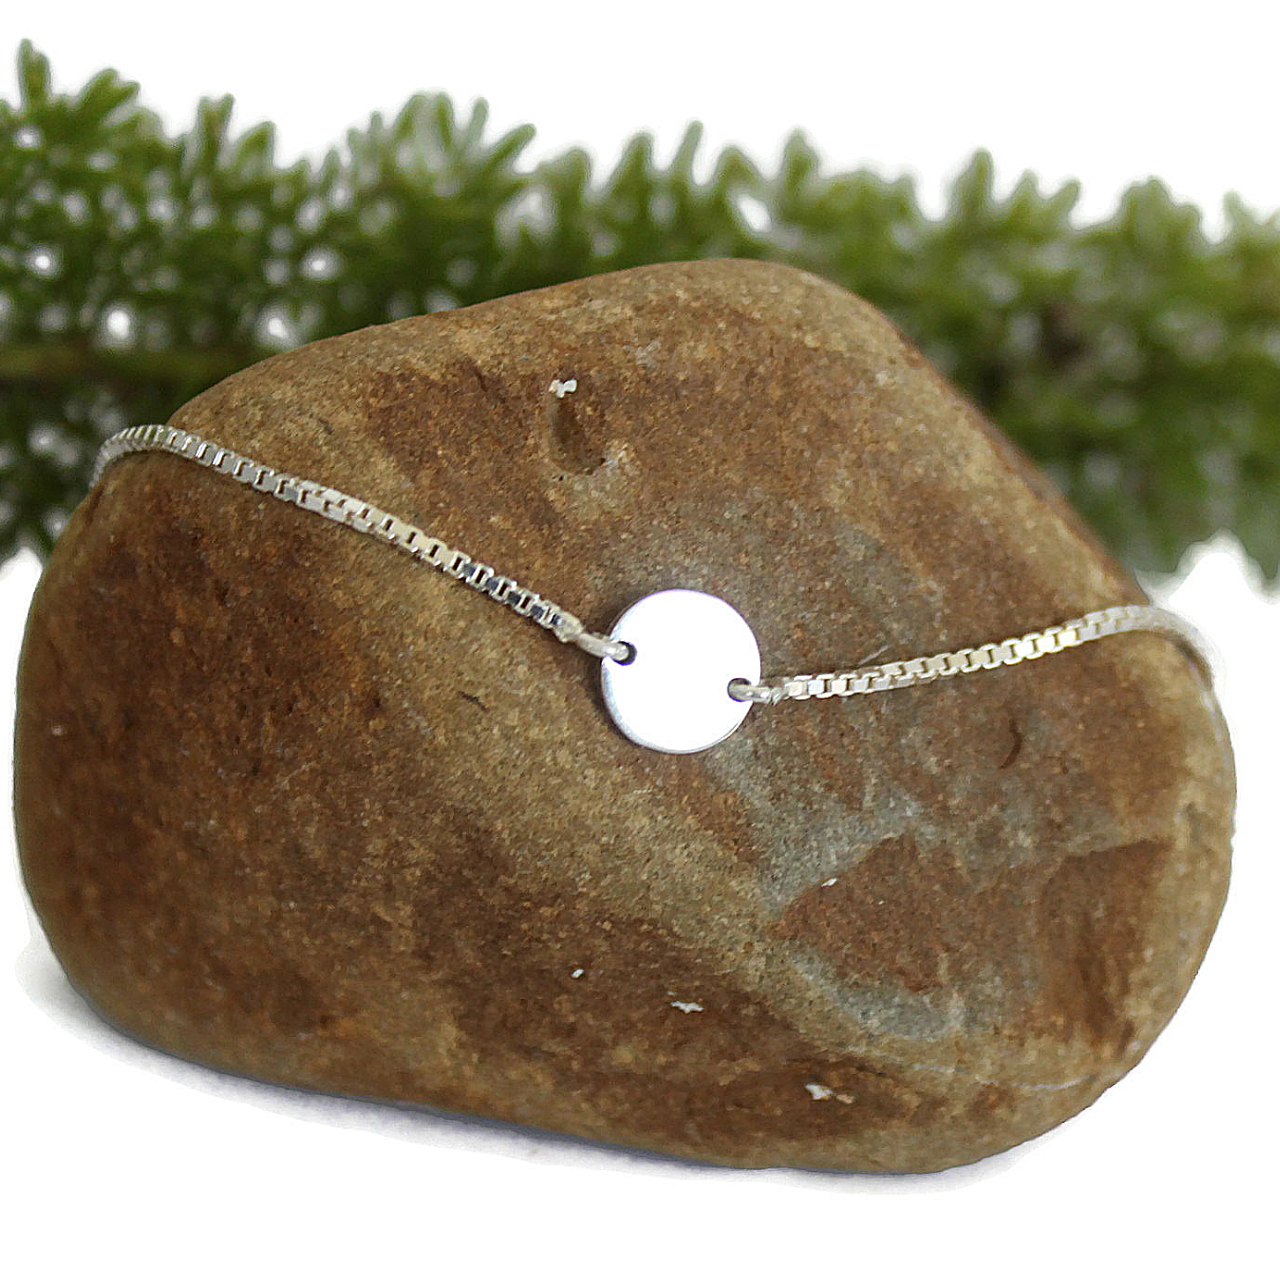 Sterling Chain Bracelet on Rock with Green Plant